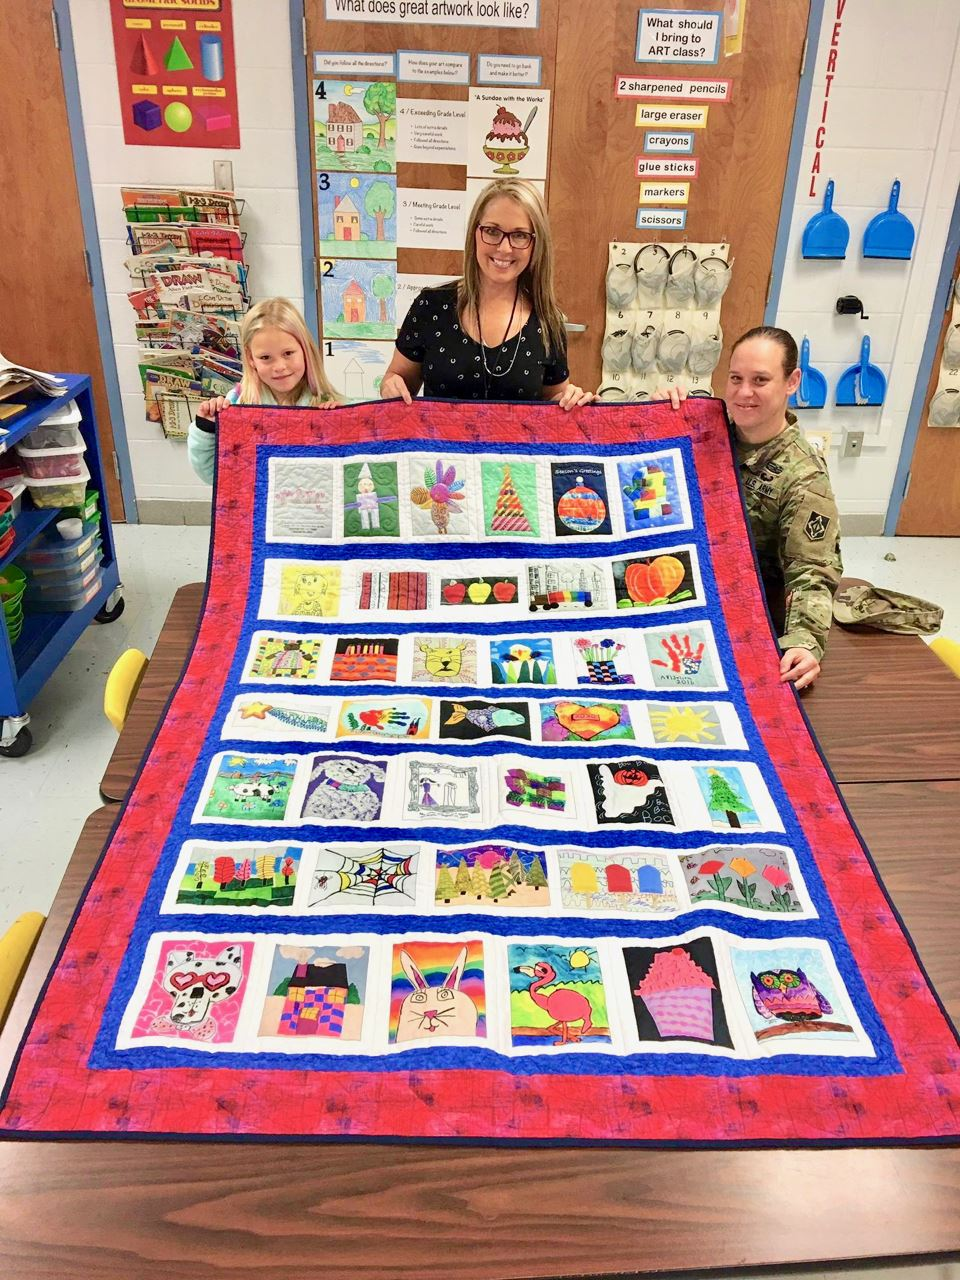 Quilt made from child's artwork